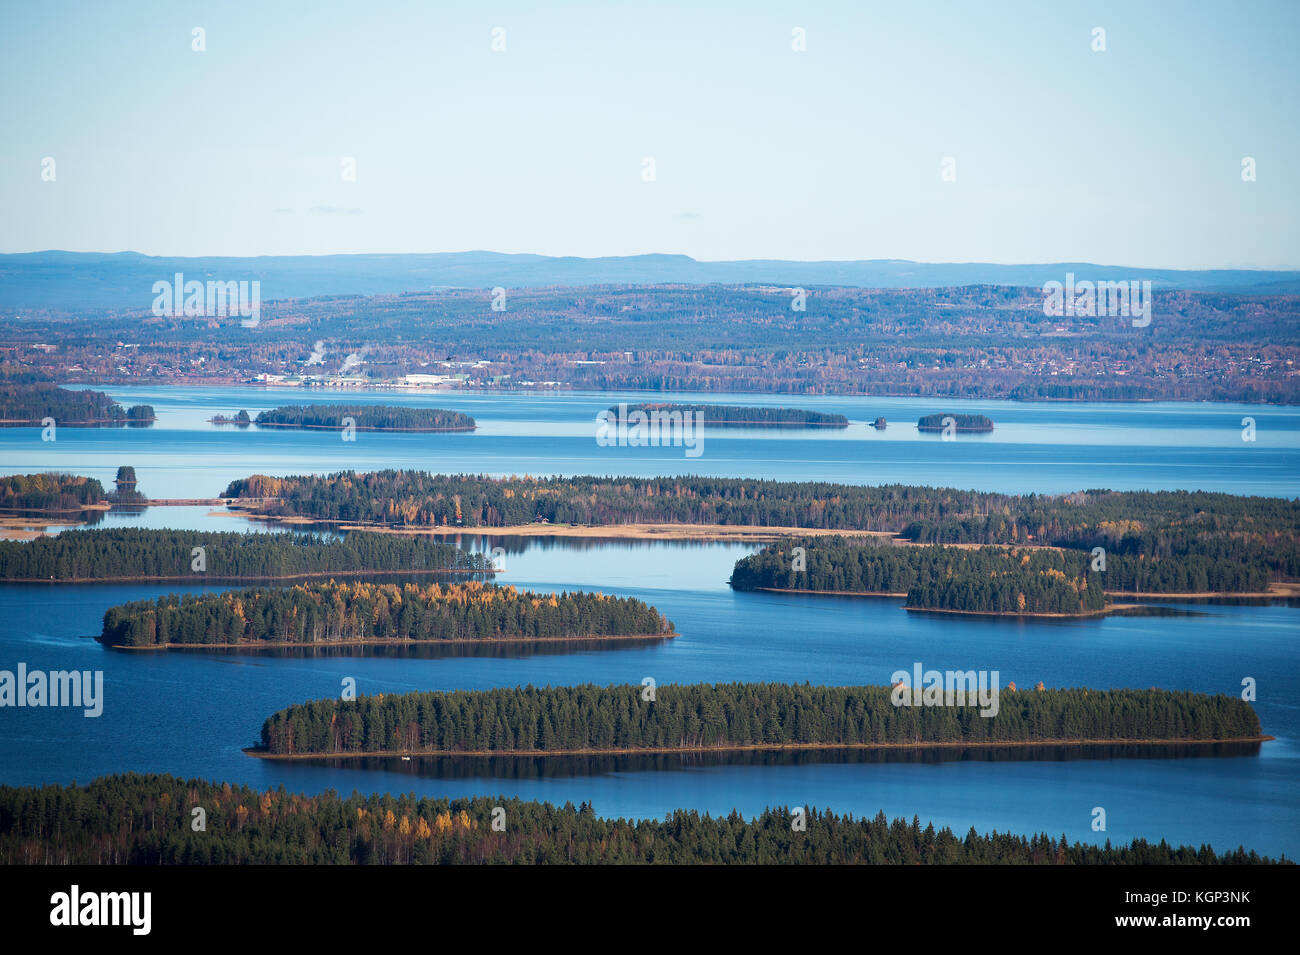 View from the top of Gesunda ski resort and lake Siljan - Stock Image